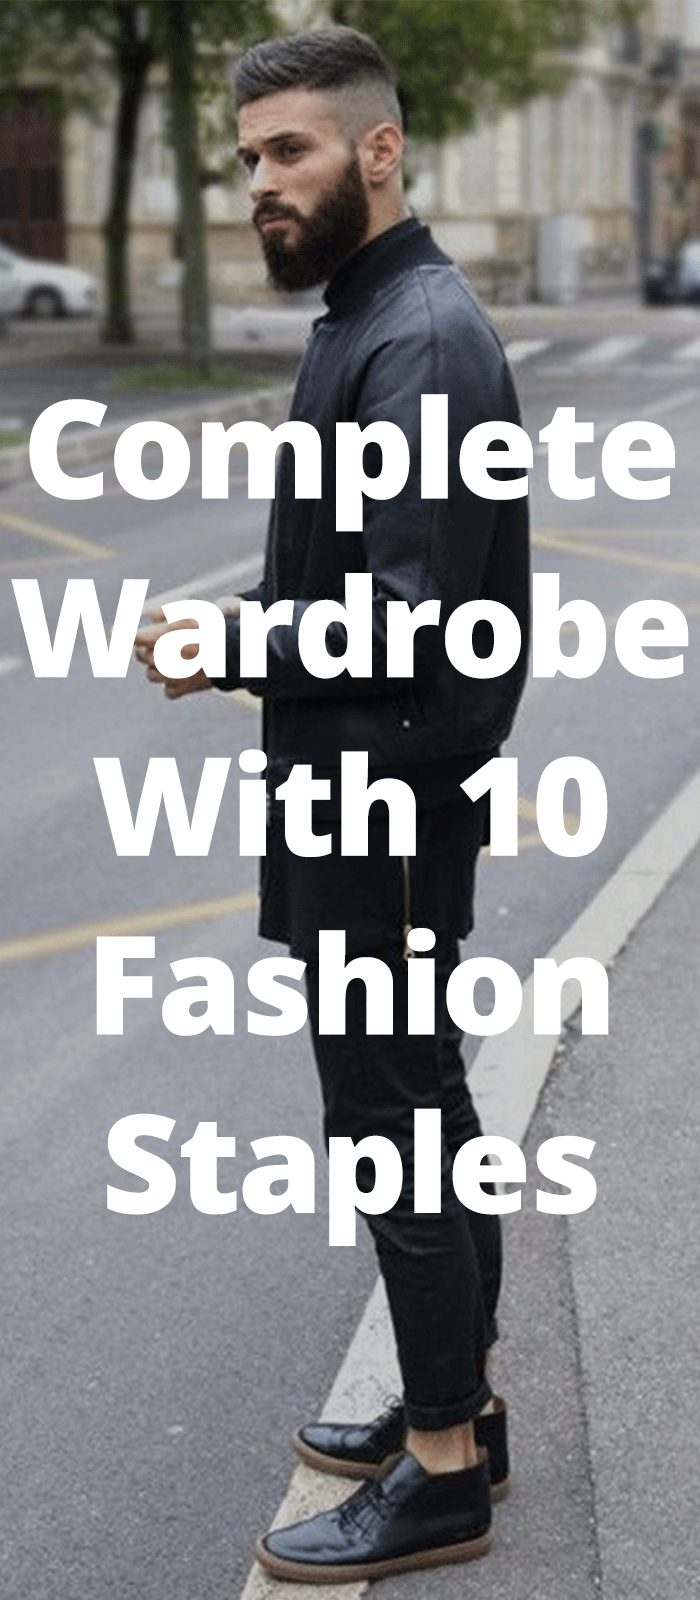 Complete Wardrobe With 10 Fashion Staples